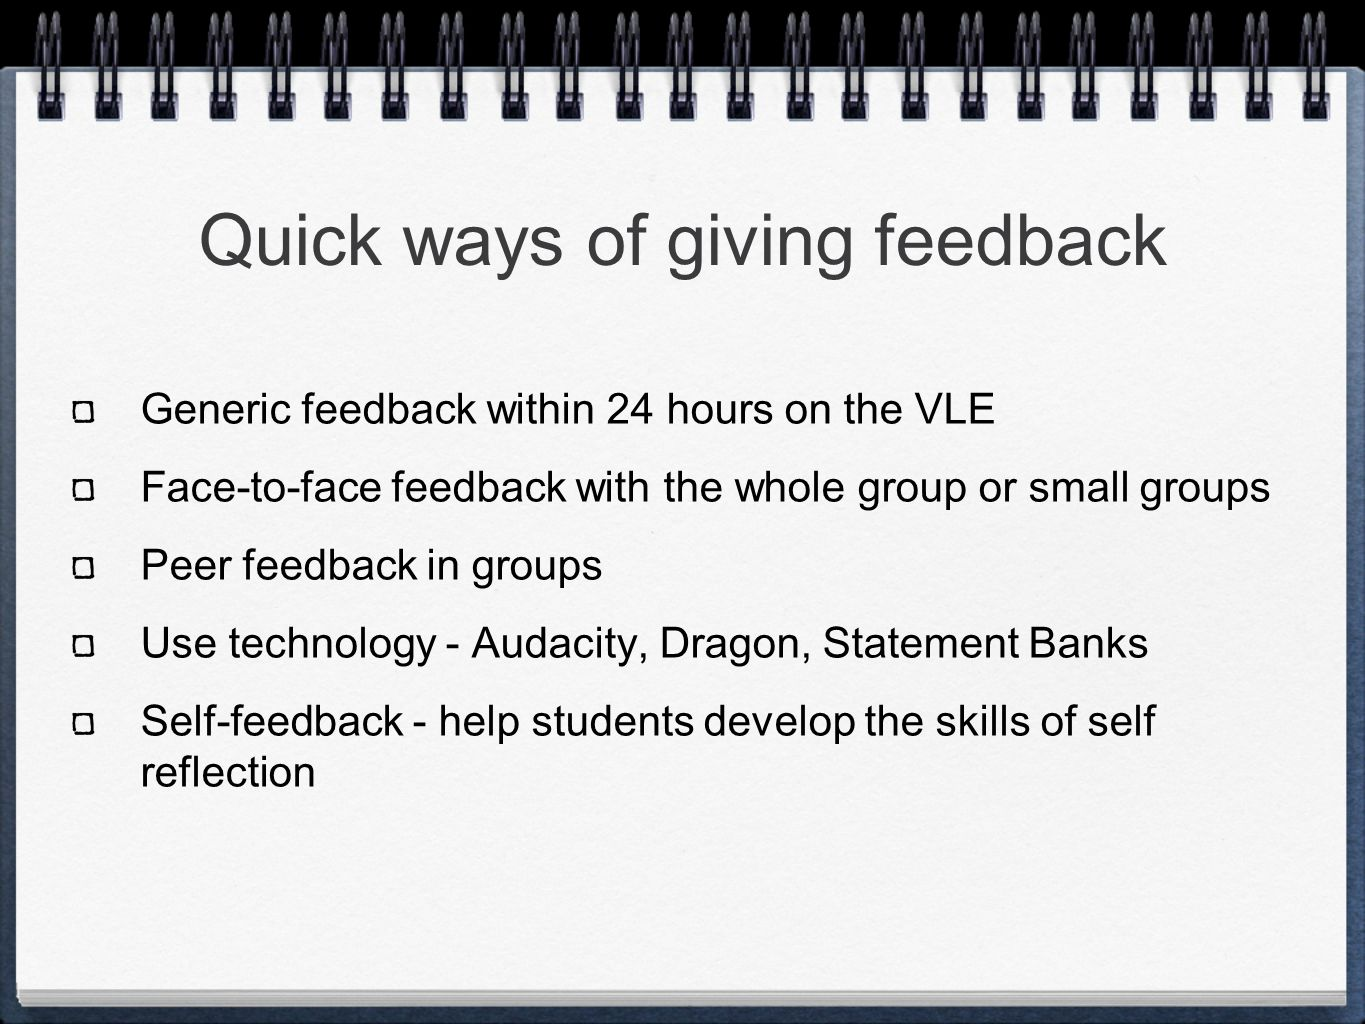 Quick ways of giving feedback Generic feedback within 24 hours on the VLE Face-to-face feedback with the whole group or small groups Peer feedback in groups Use technology - Audacity, Dragon, Statement Banks Self-feedback - help students develop the skills of self reflection